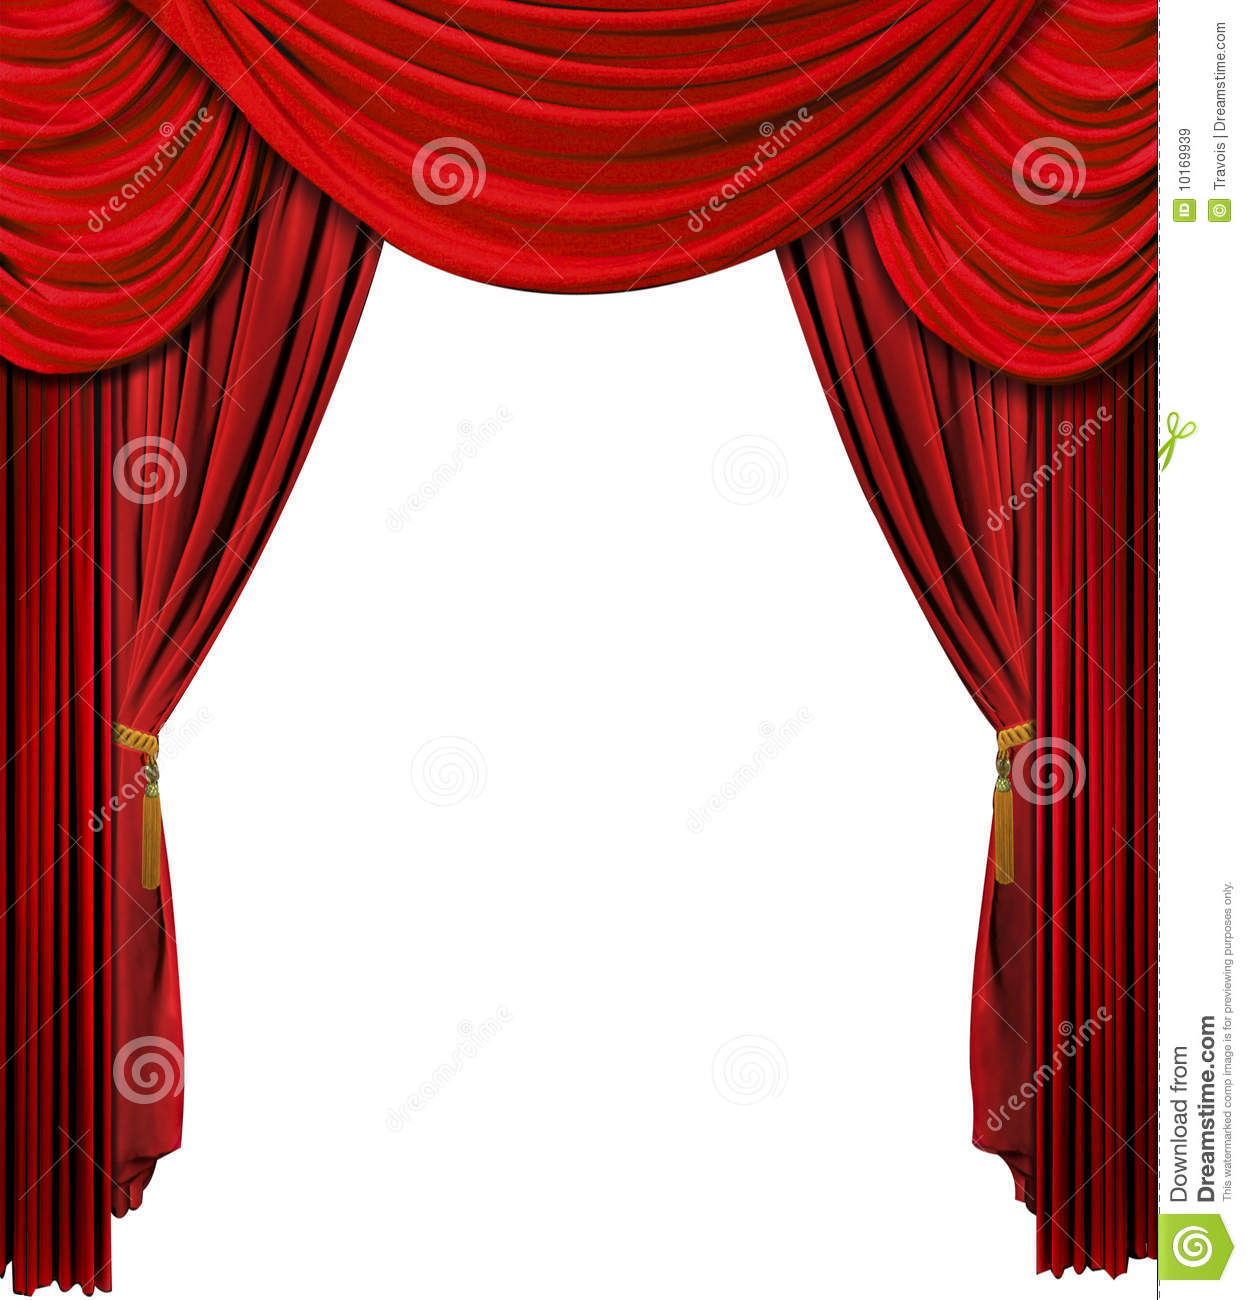 Red stage curtains.